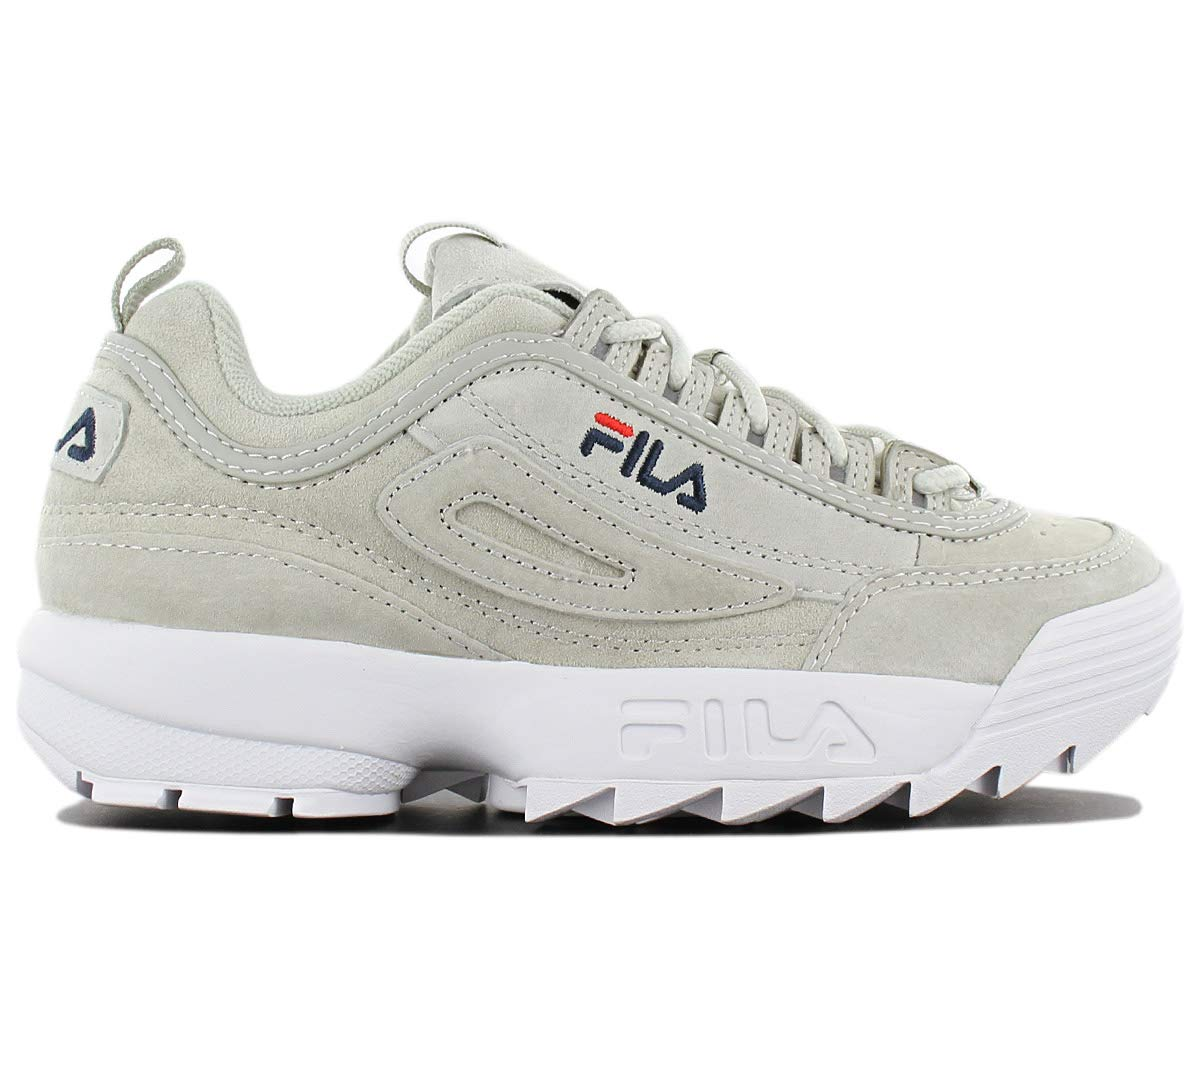 Fila Disruptor S Low WN's 10103043JW, Turnschuhe